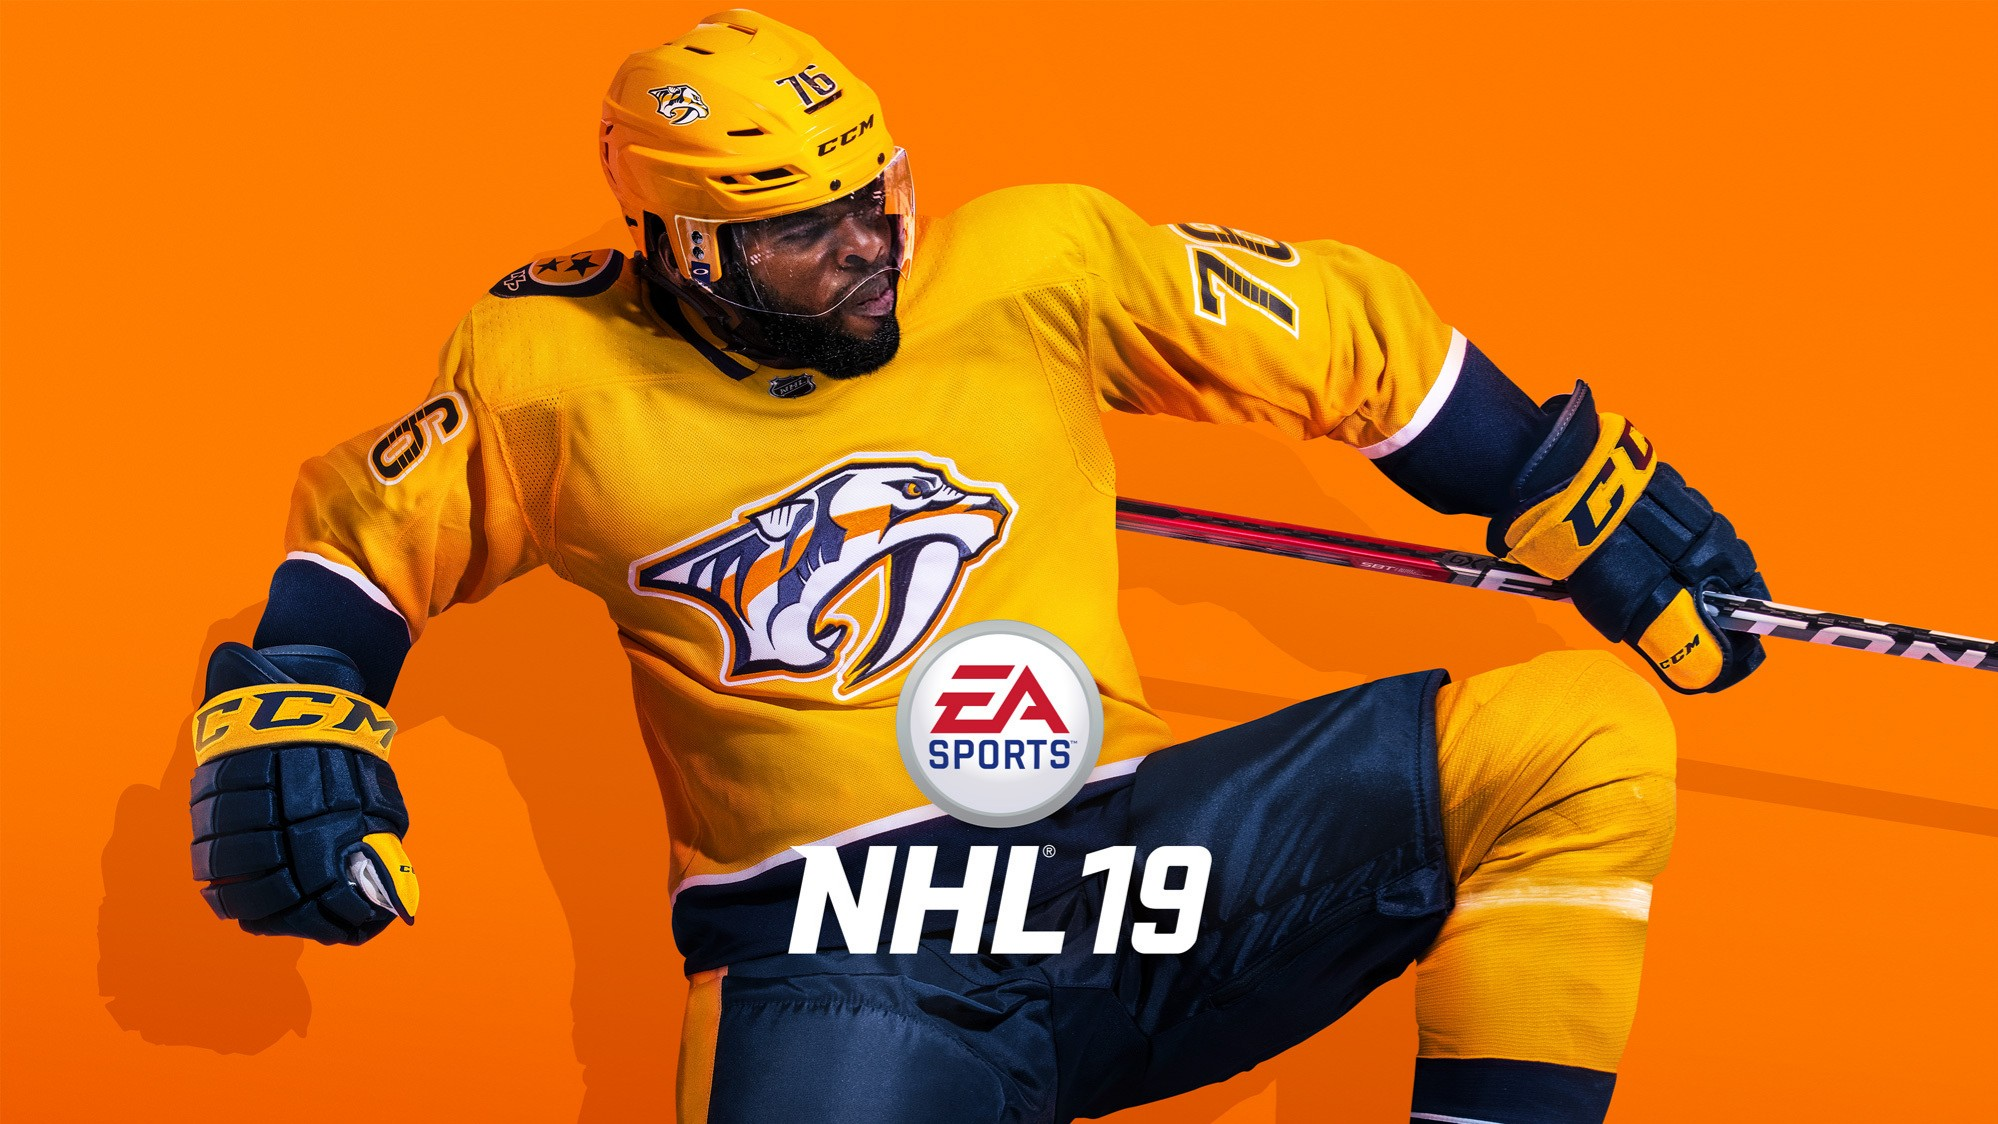 cf66cca92 PK Subban the second Black player to appear on an NHL video game cover